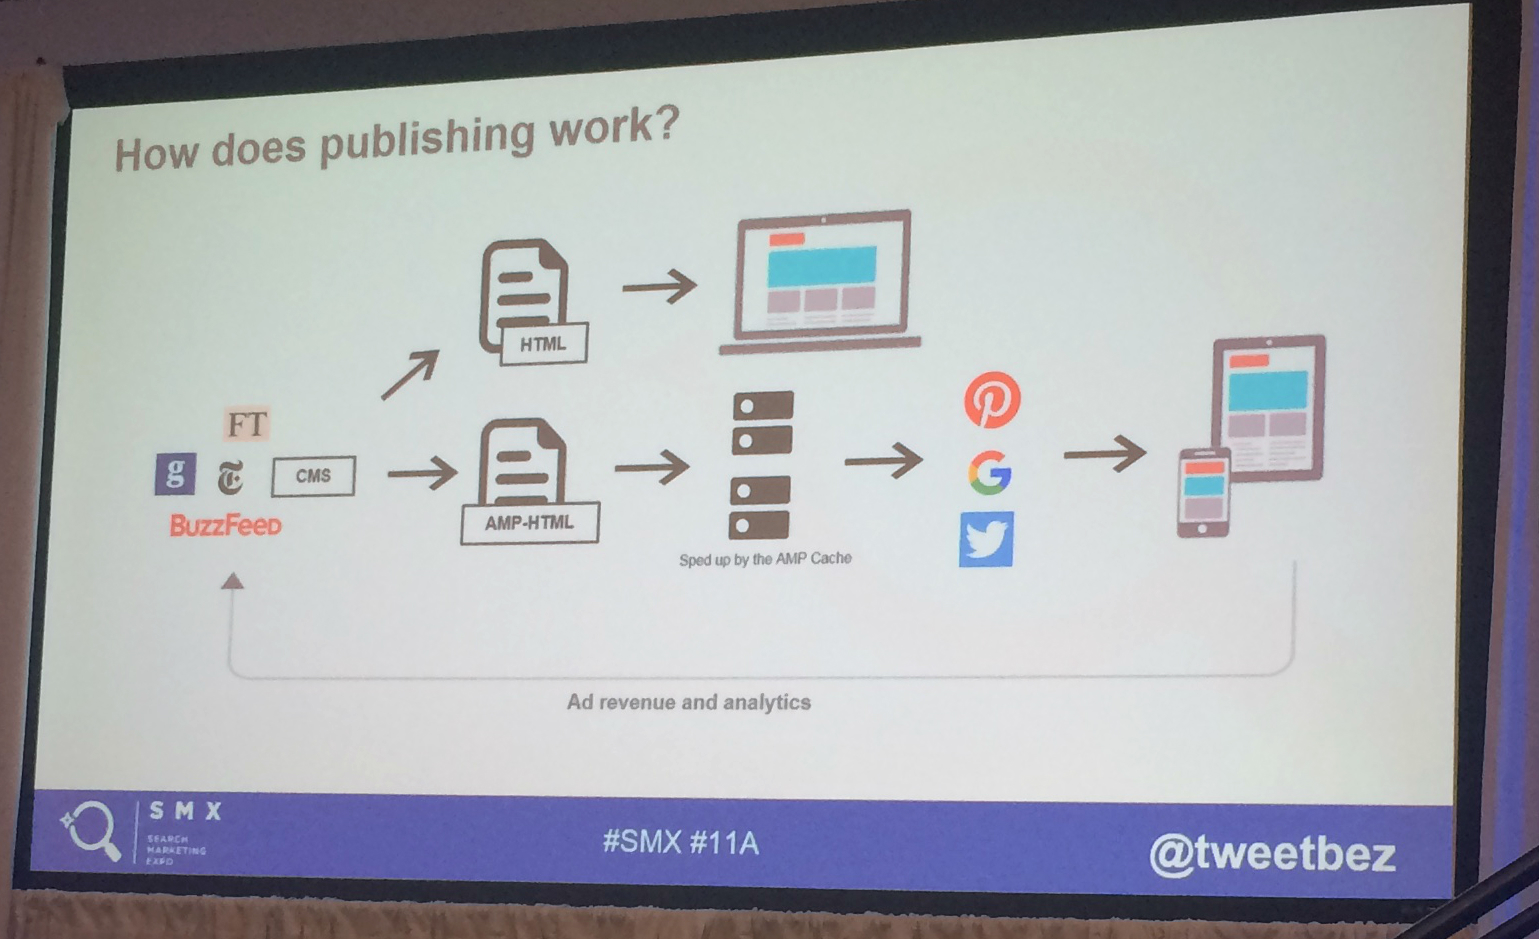 Diagram of how publishing works on the web